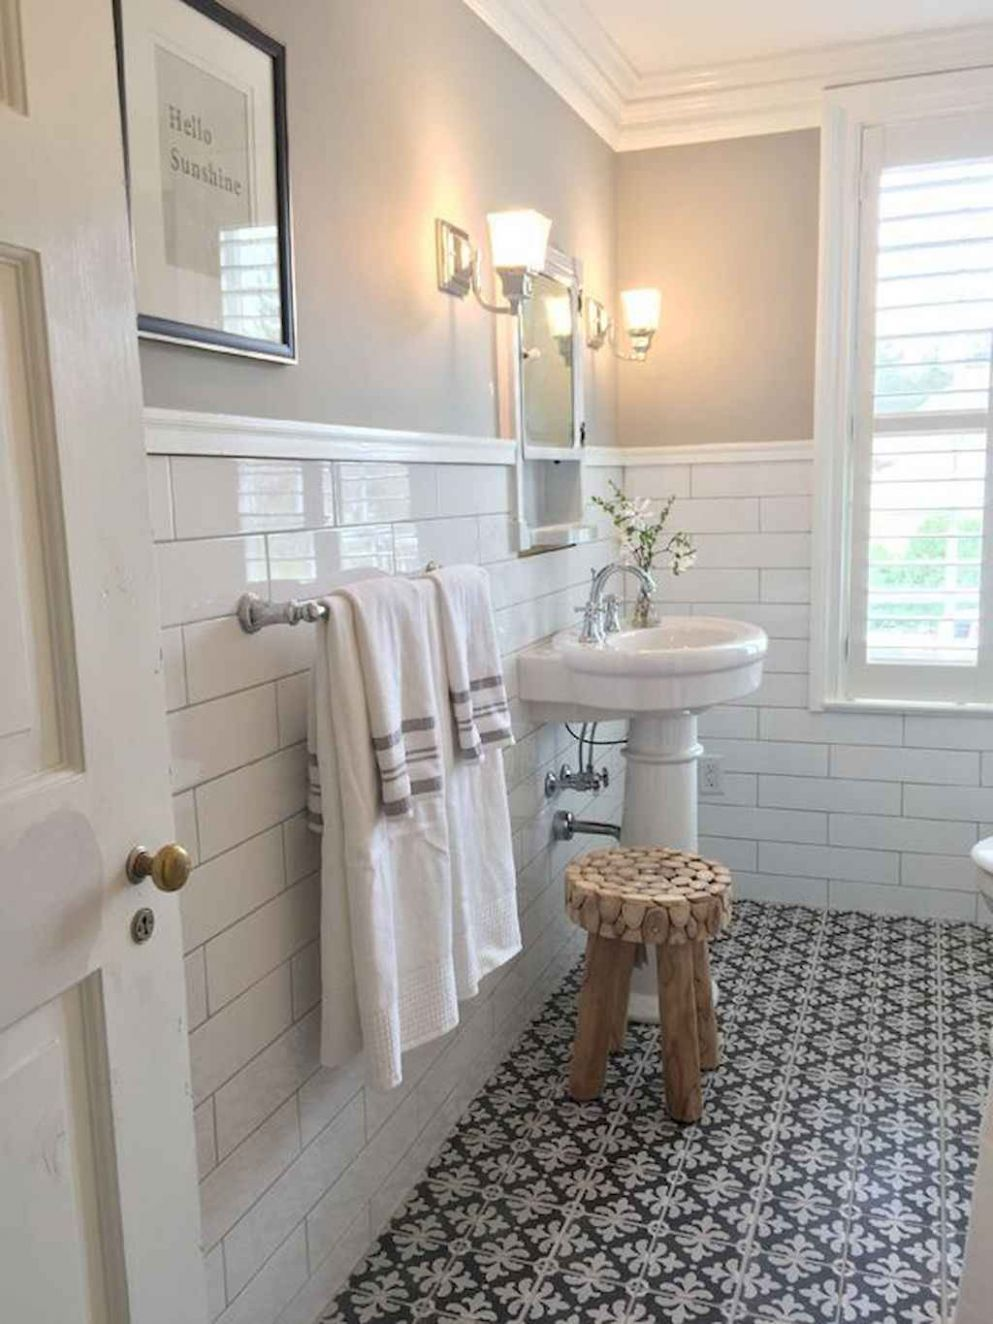 Vintage farmhouse bathroom remodel ideas on a budget (12 ...